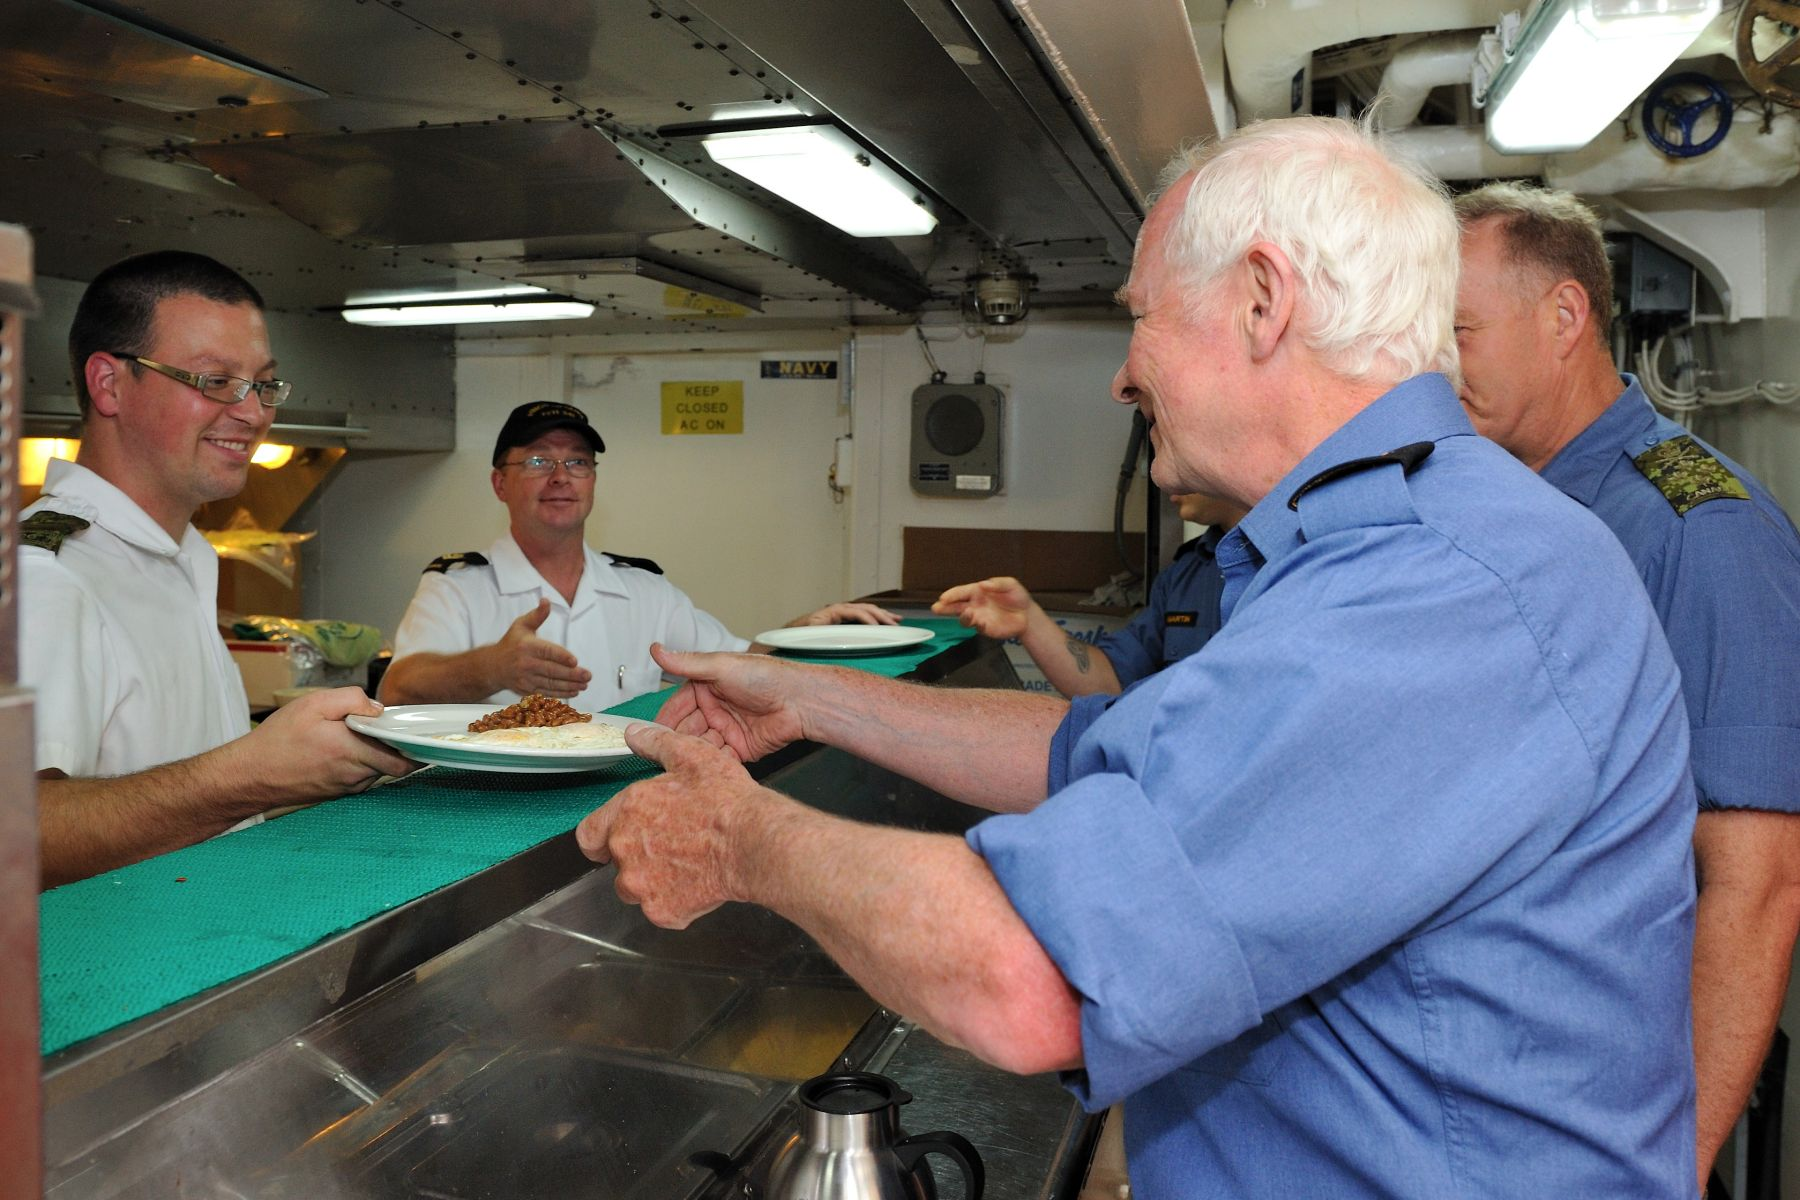 On the morning of July 22, His Excellency had breakfast on board Her Majesty's Canadian Ship (HMCS) Ottawa.